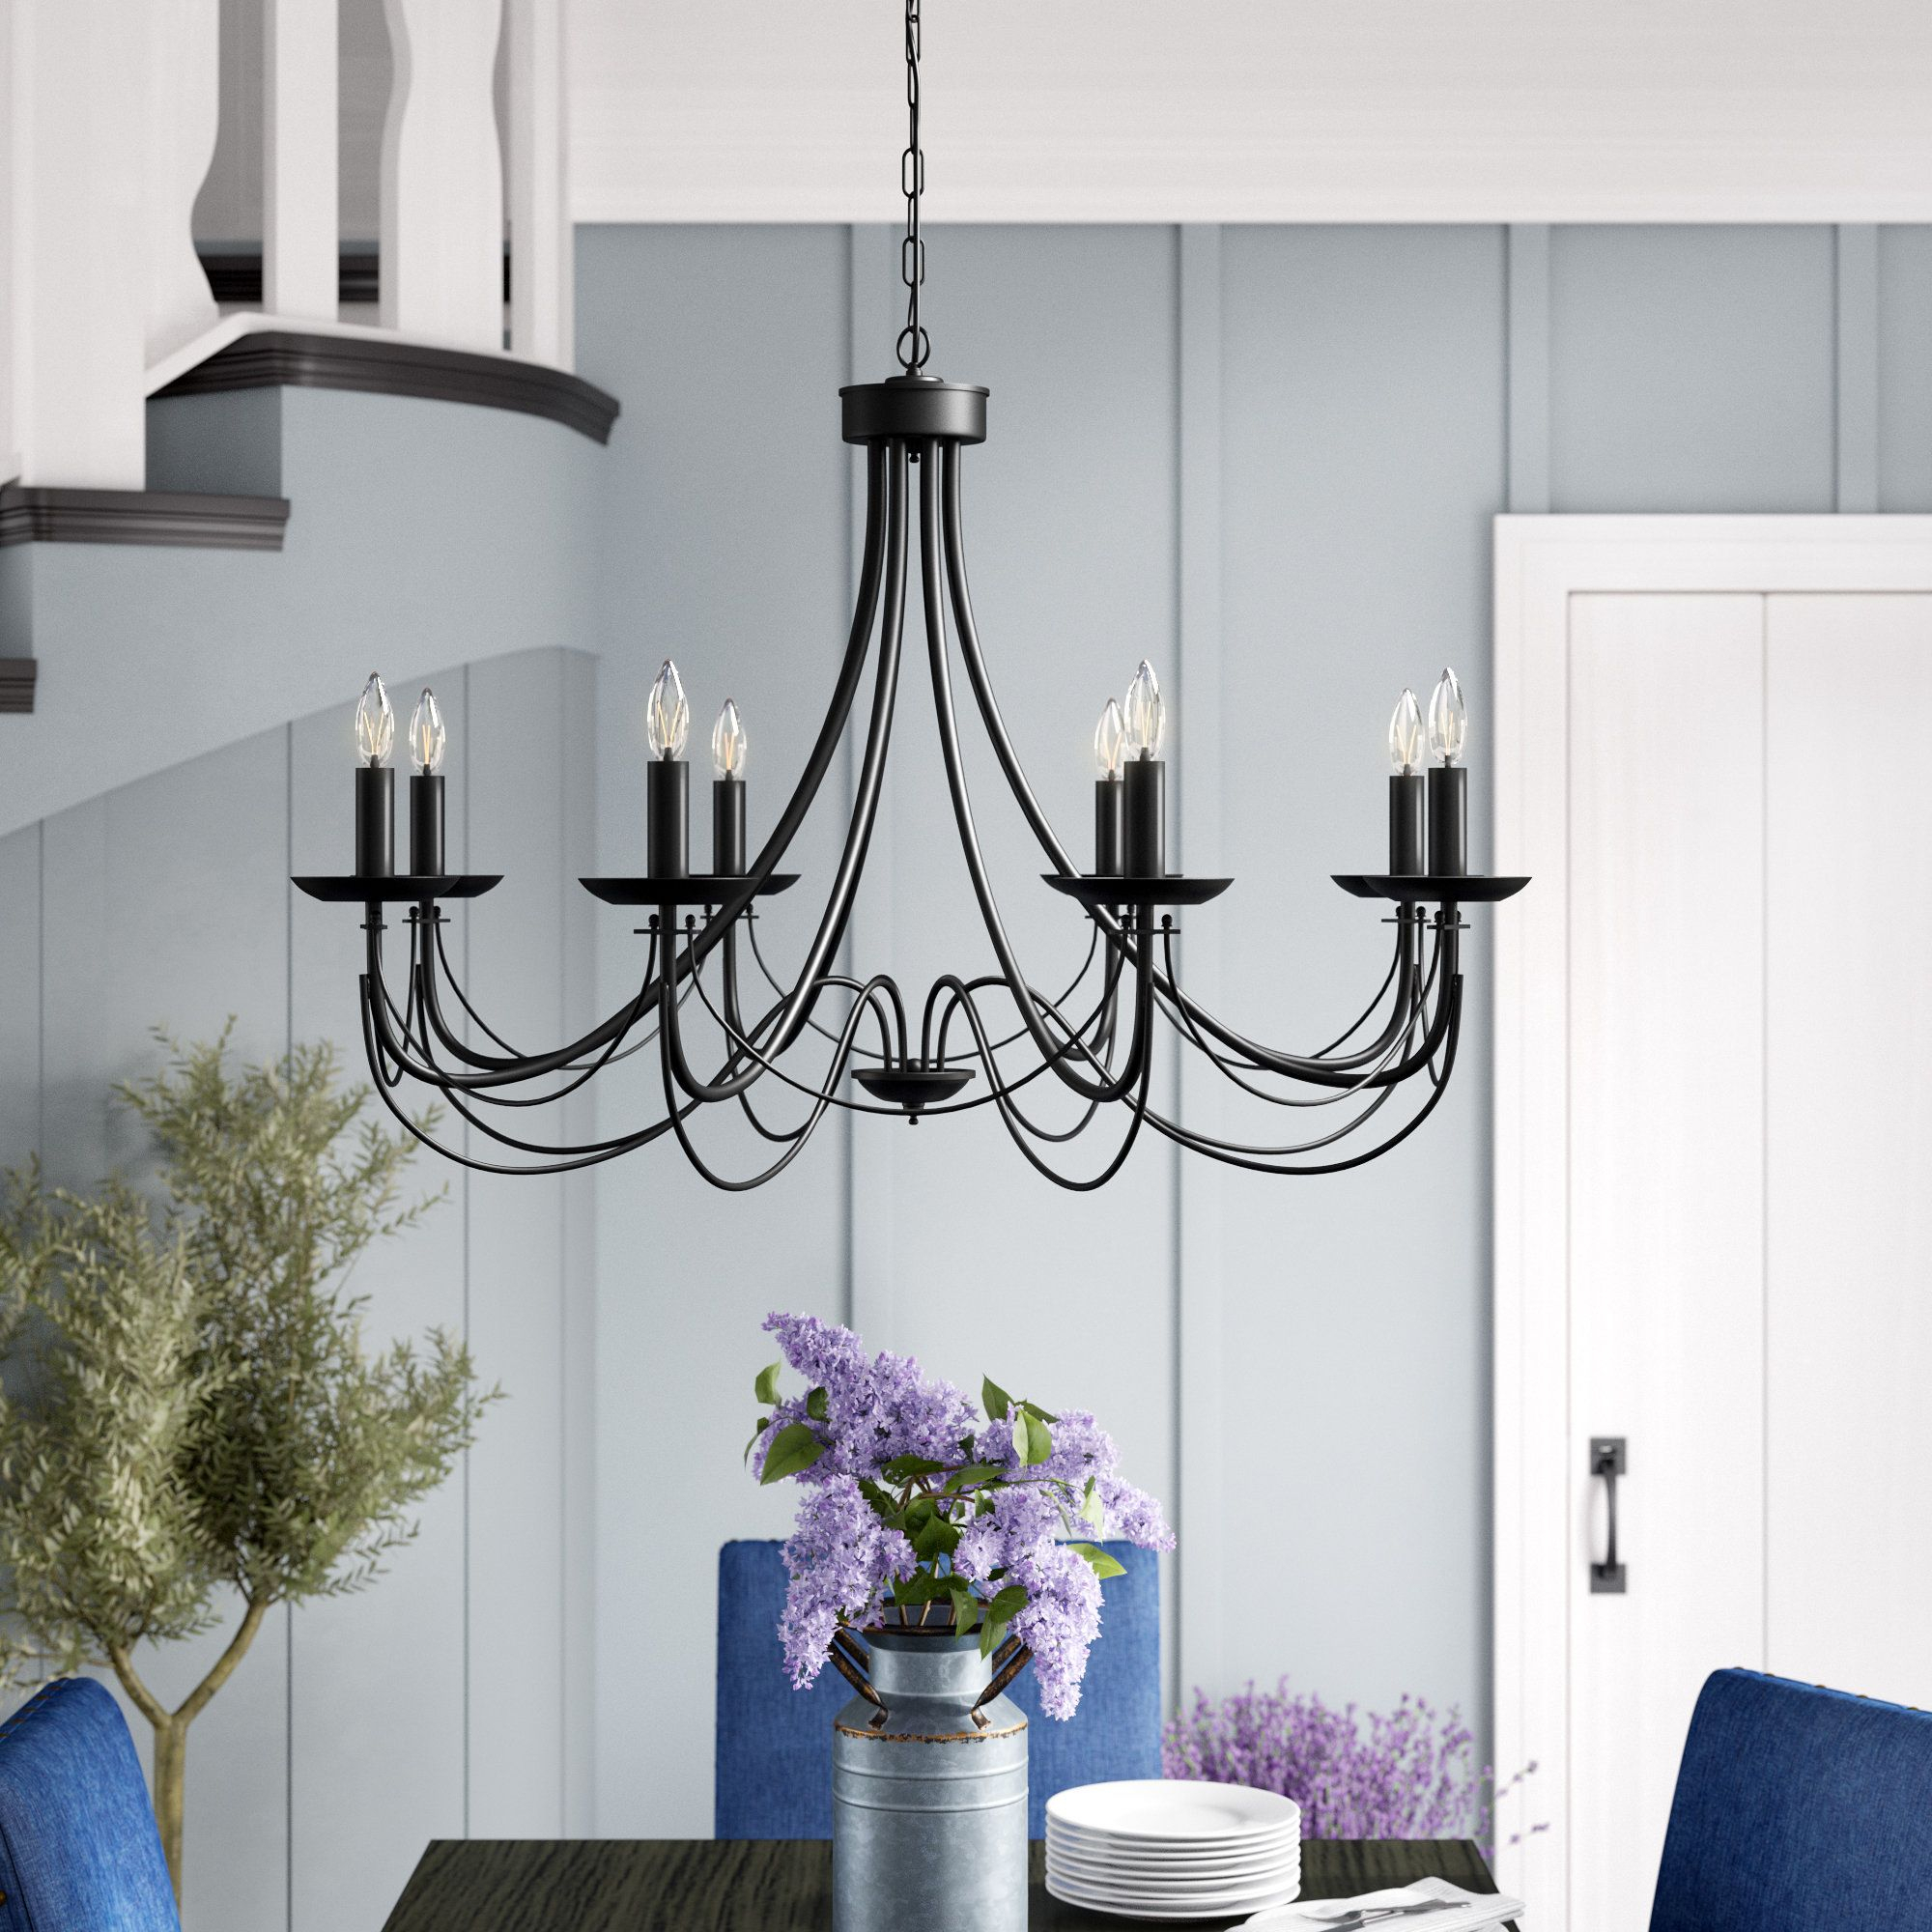 Ryckman Iron 8 Light Candle Style Chandelier | Light Inside Giverny 9 Light Candle Style Chandeliers (View 16 of 30)